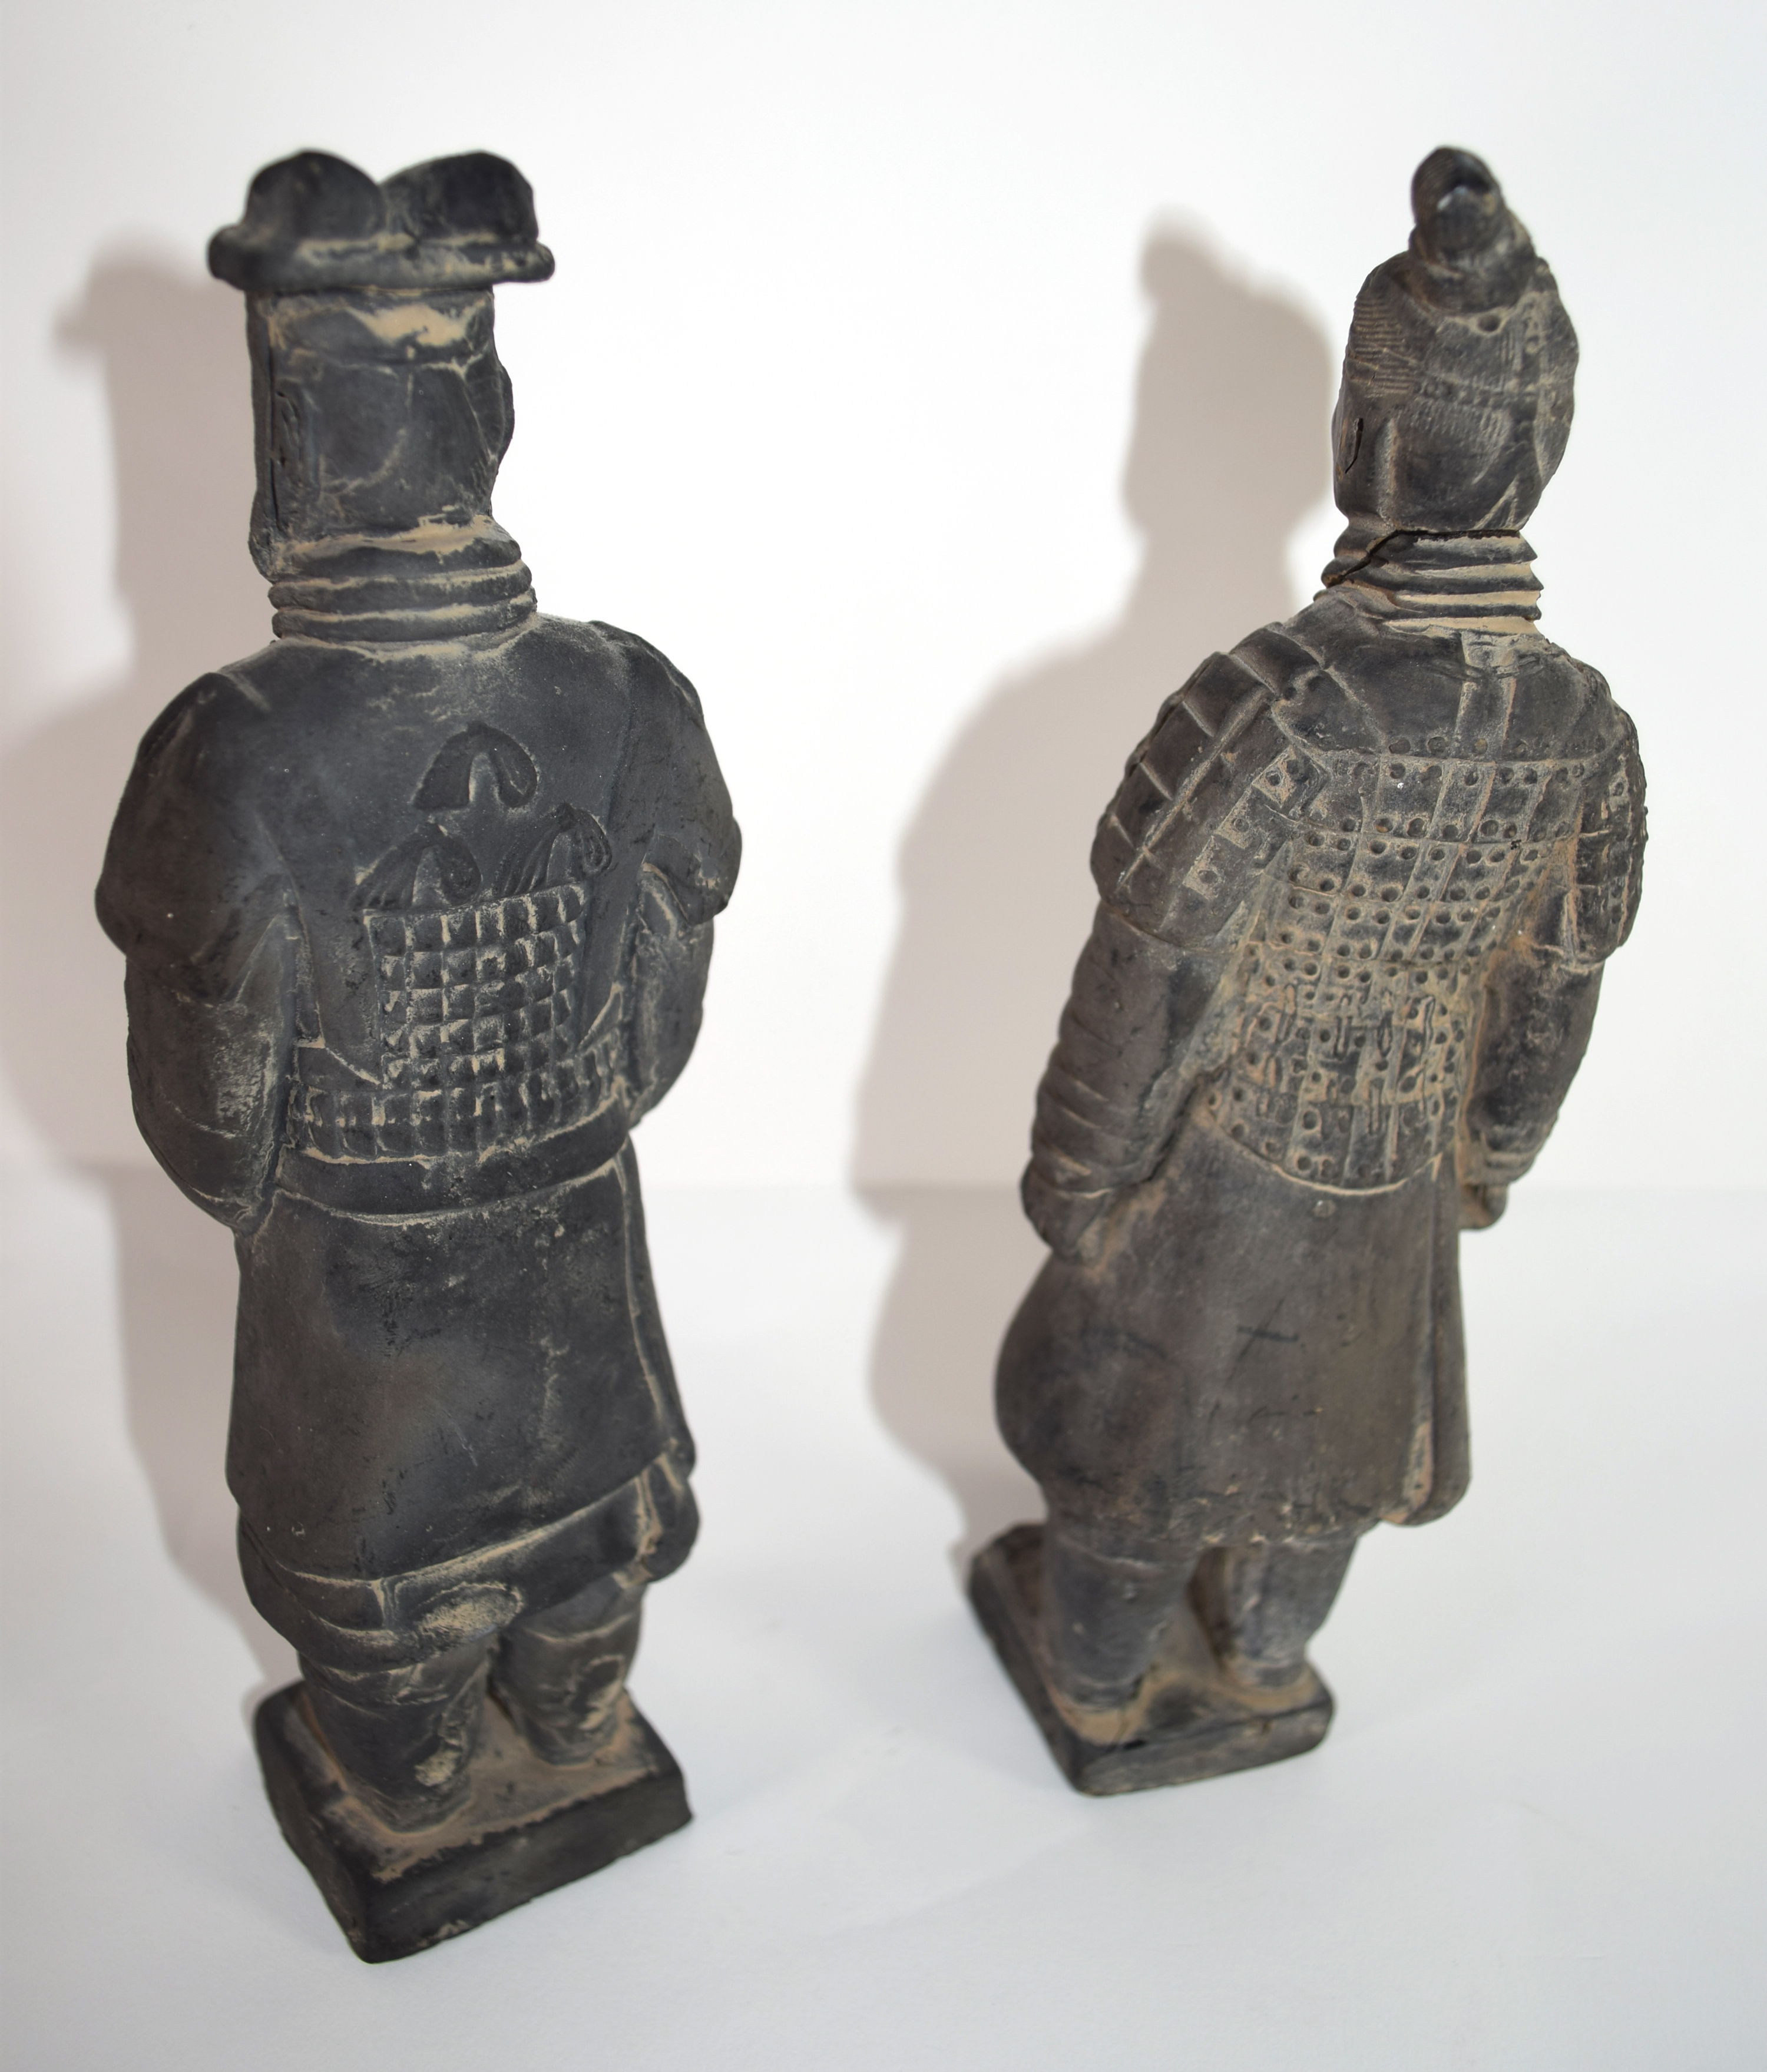 Two Chinese pottery figures, Han Dynasty type, of Chinese dignitaries on square bases with title - Image 2 of 2